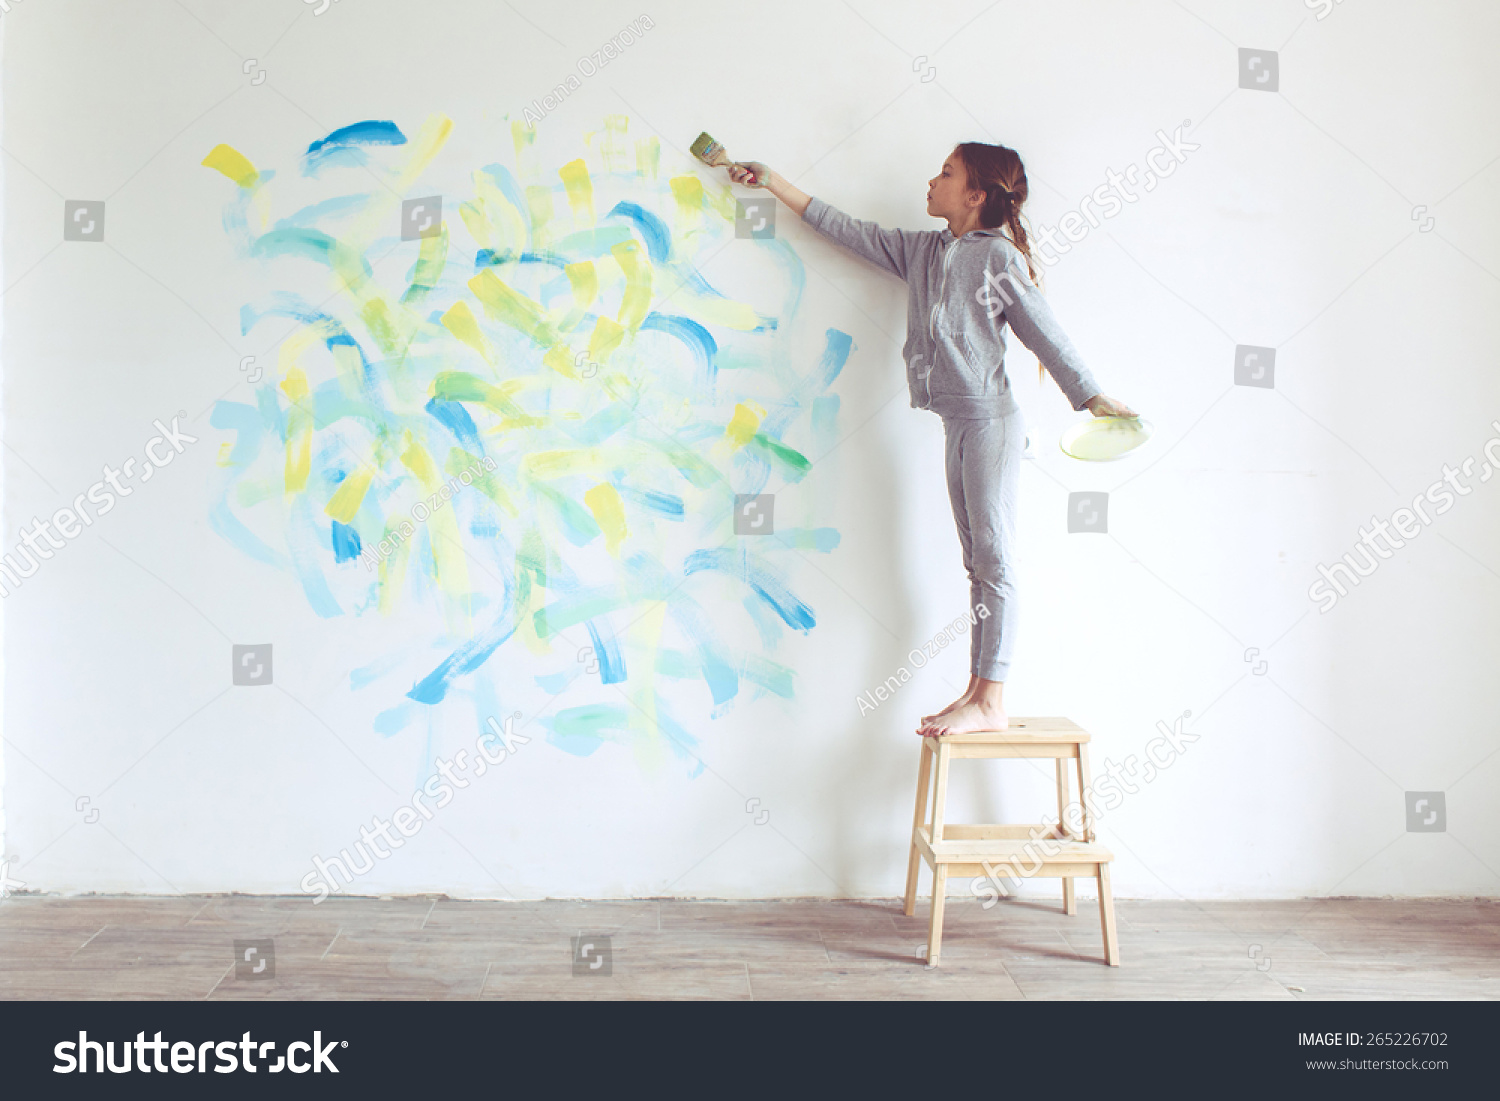 8 years old girl painting the wall at home instagram for Style at home instagram